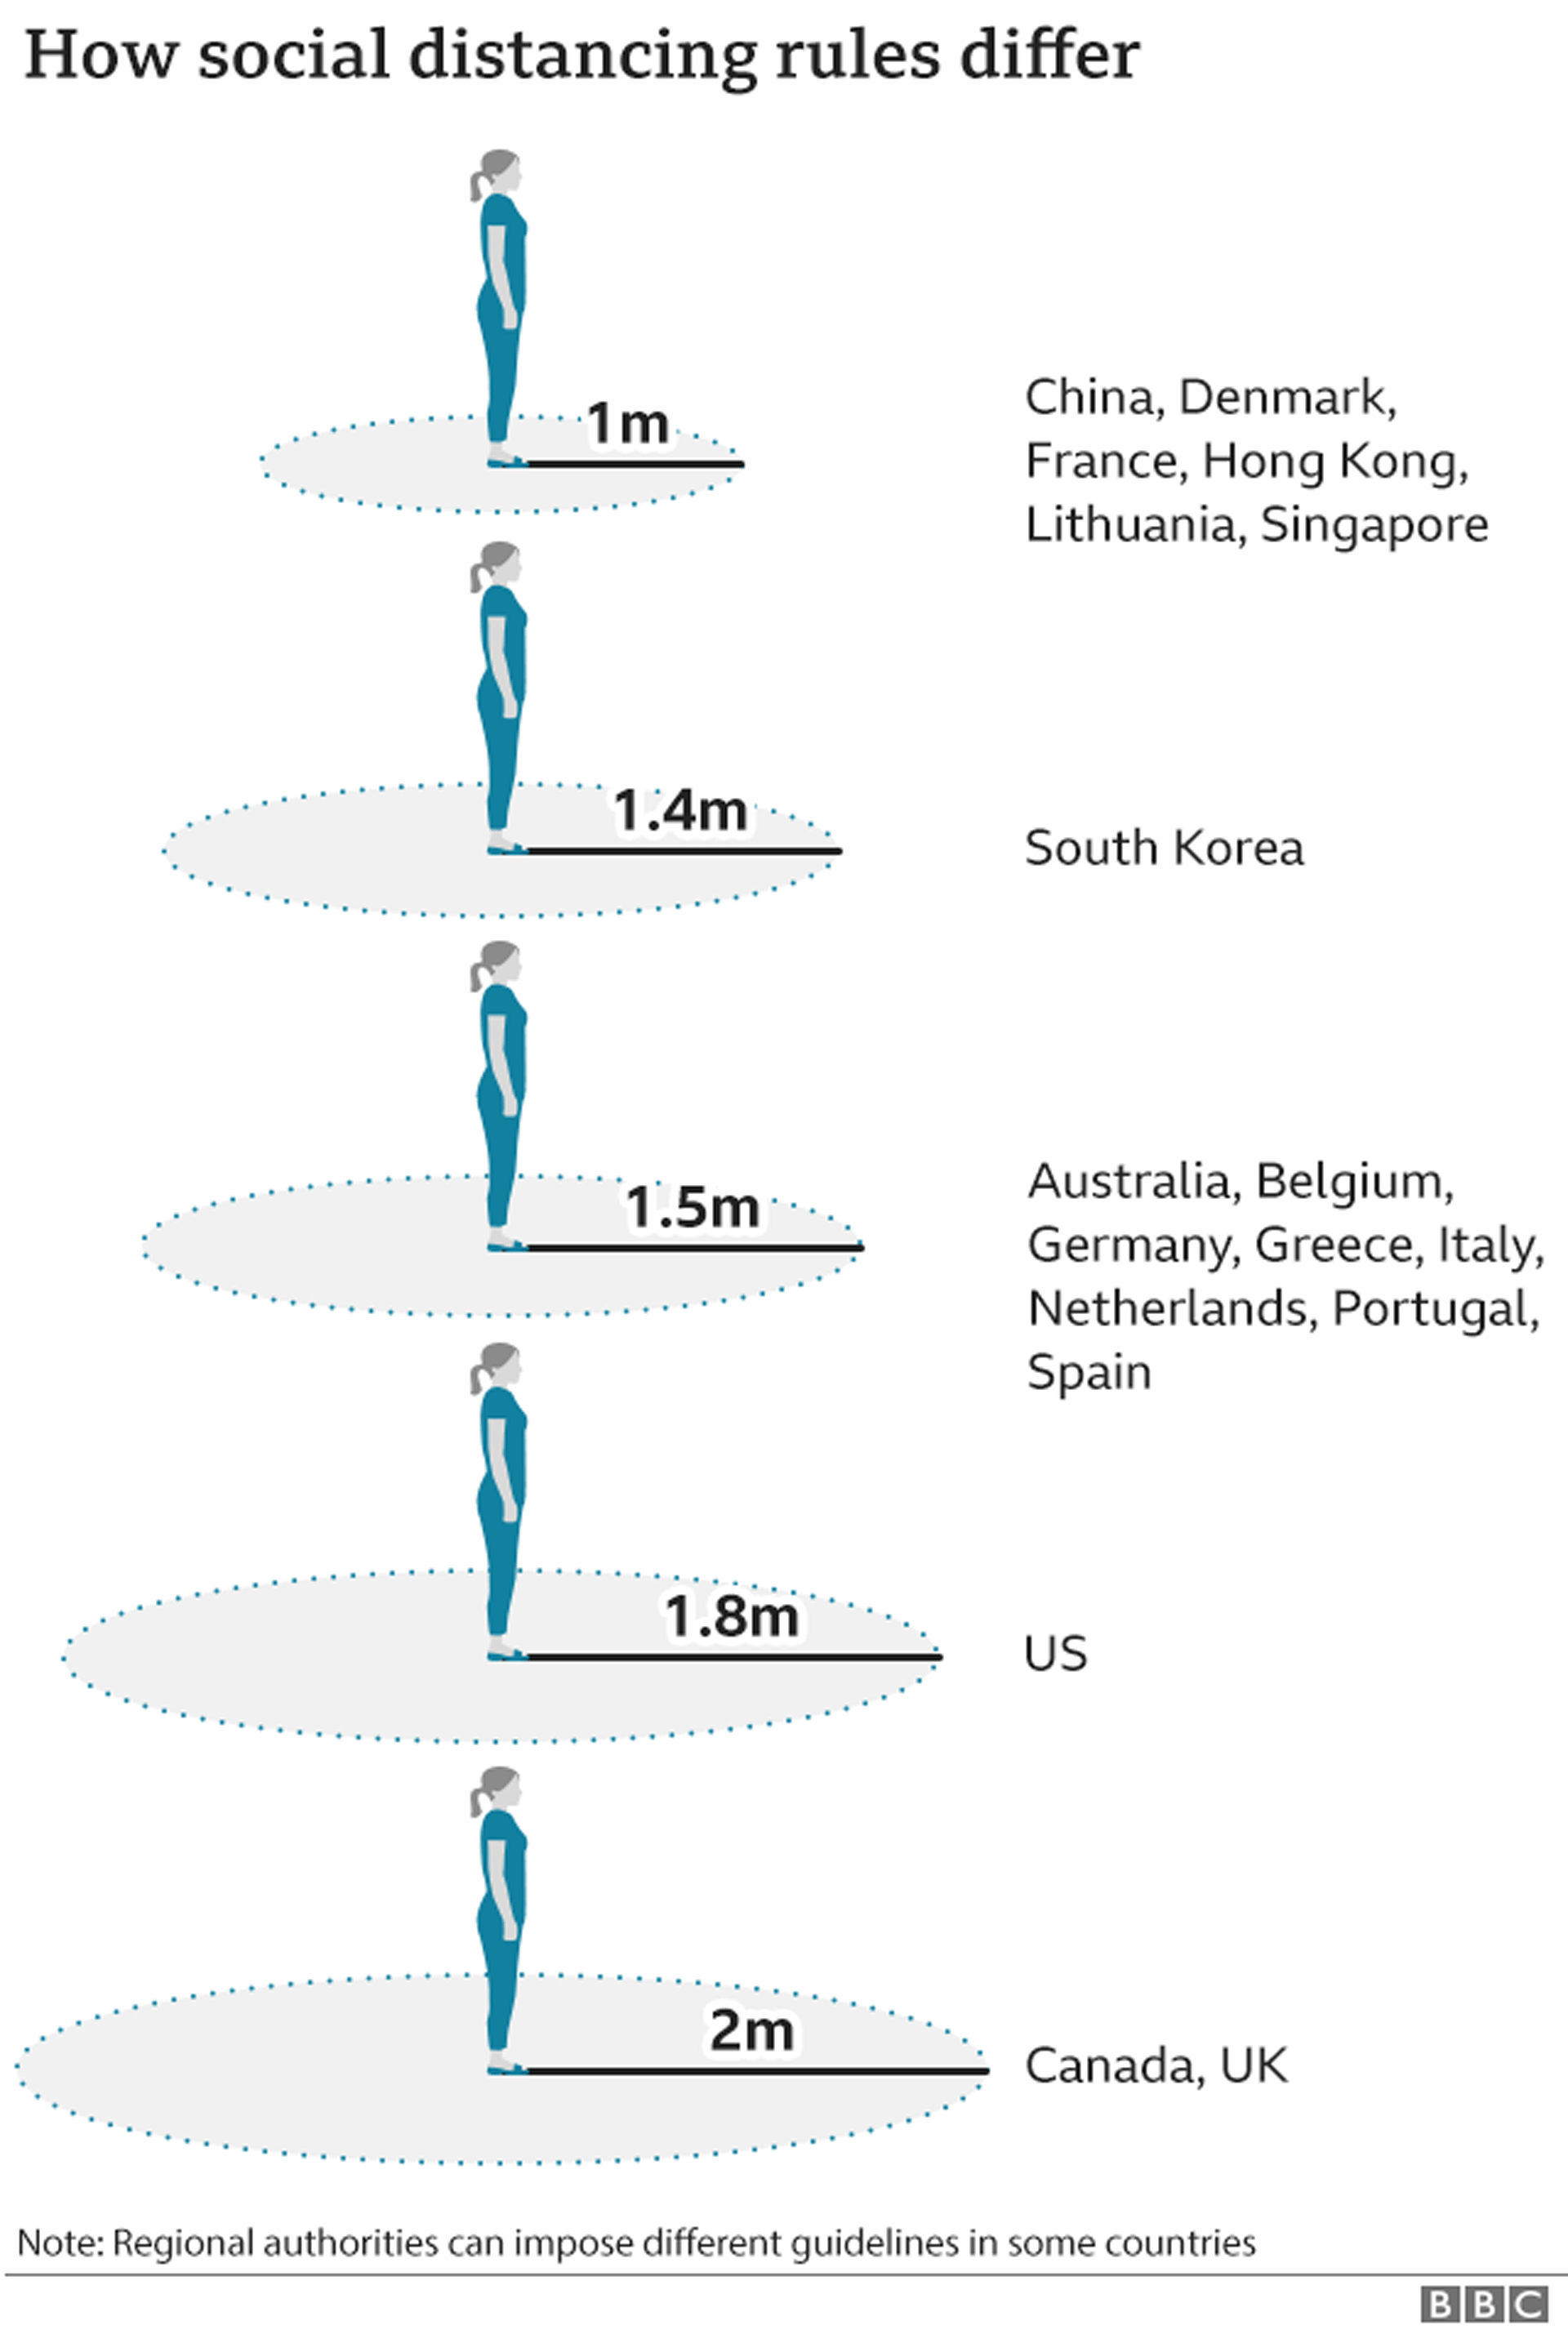 Graphic of social distancing rules around the world